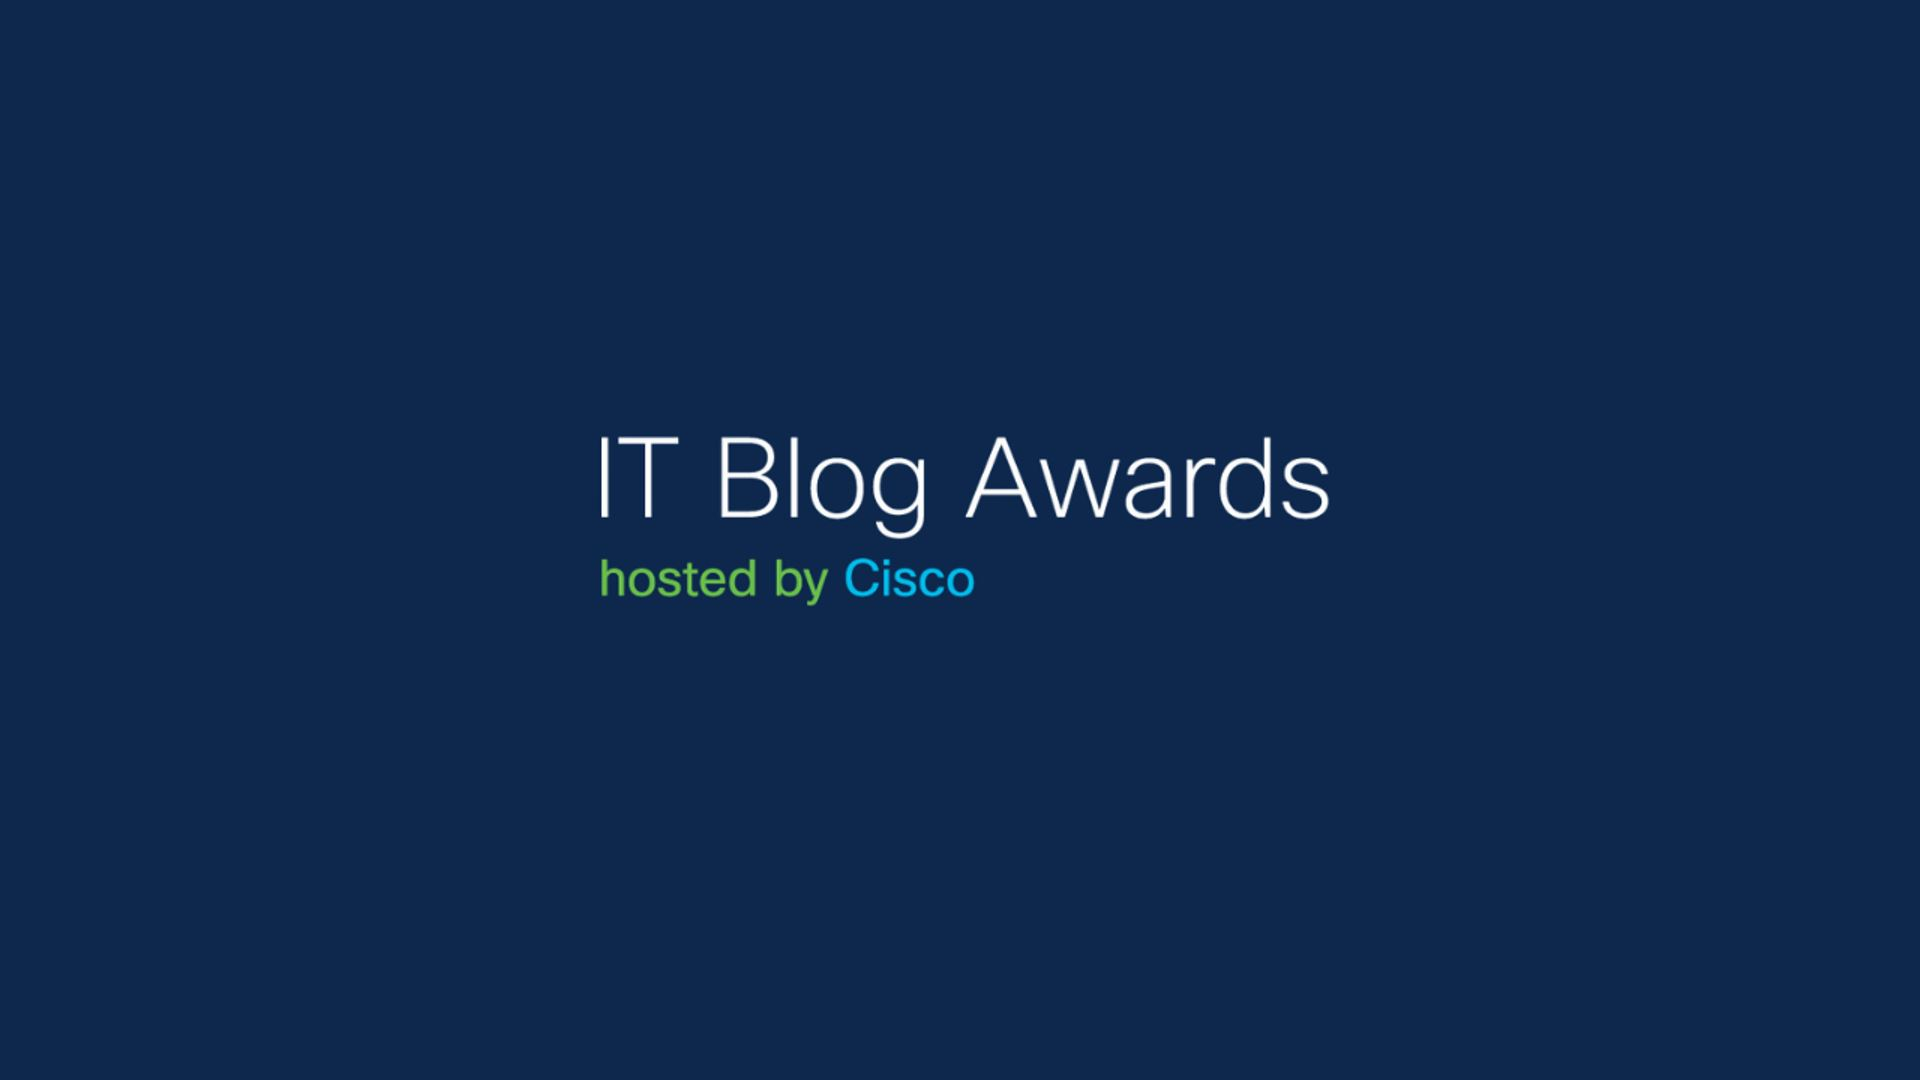 Don't miss out on the 2020 IT Blog Awards!